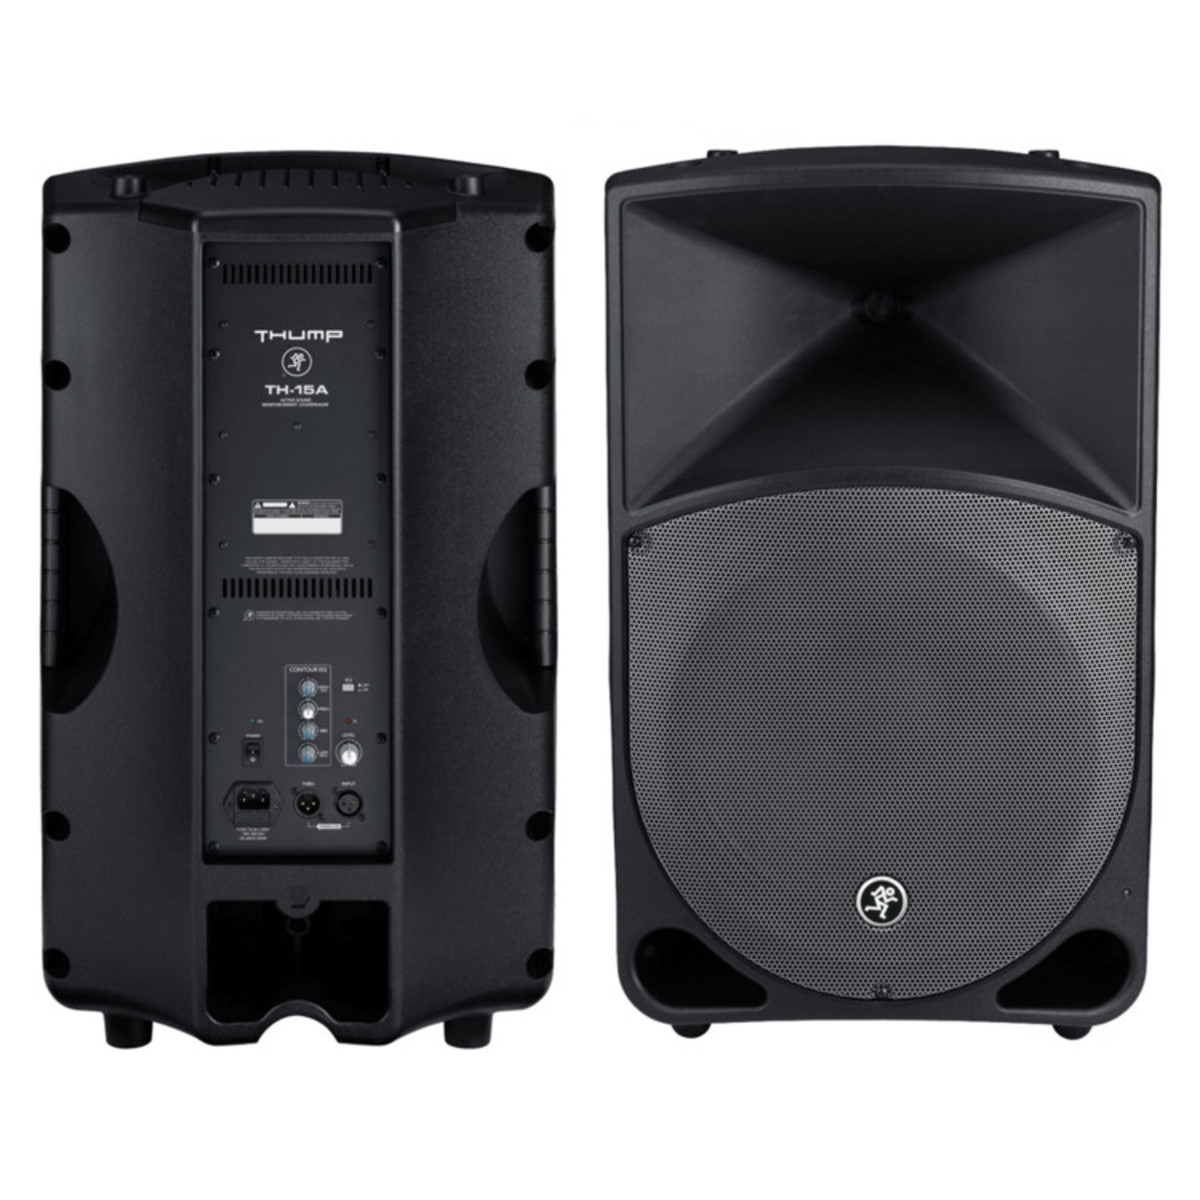 mackie th 15a 402 vlz3 mixer complete pa system at. Black Bedroom Furniture Sets. Home Design Ideas